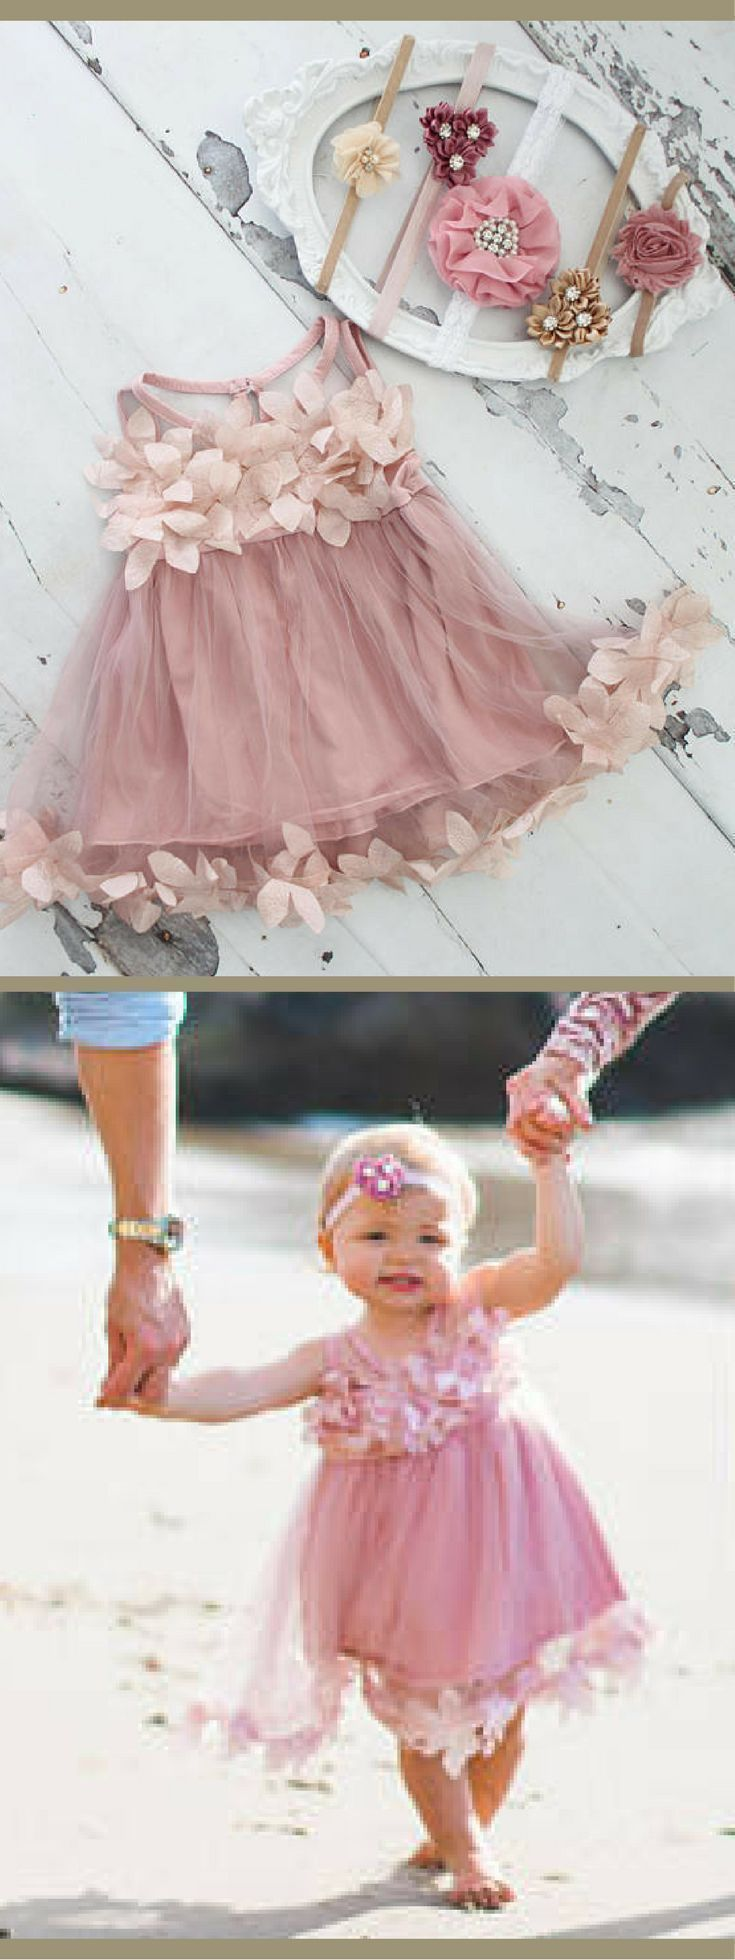 Beach wedding flower girl dresses   best flower girl dresses images on Pinterest  Brides